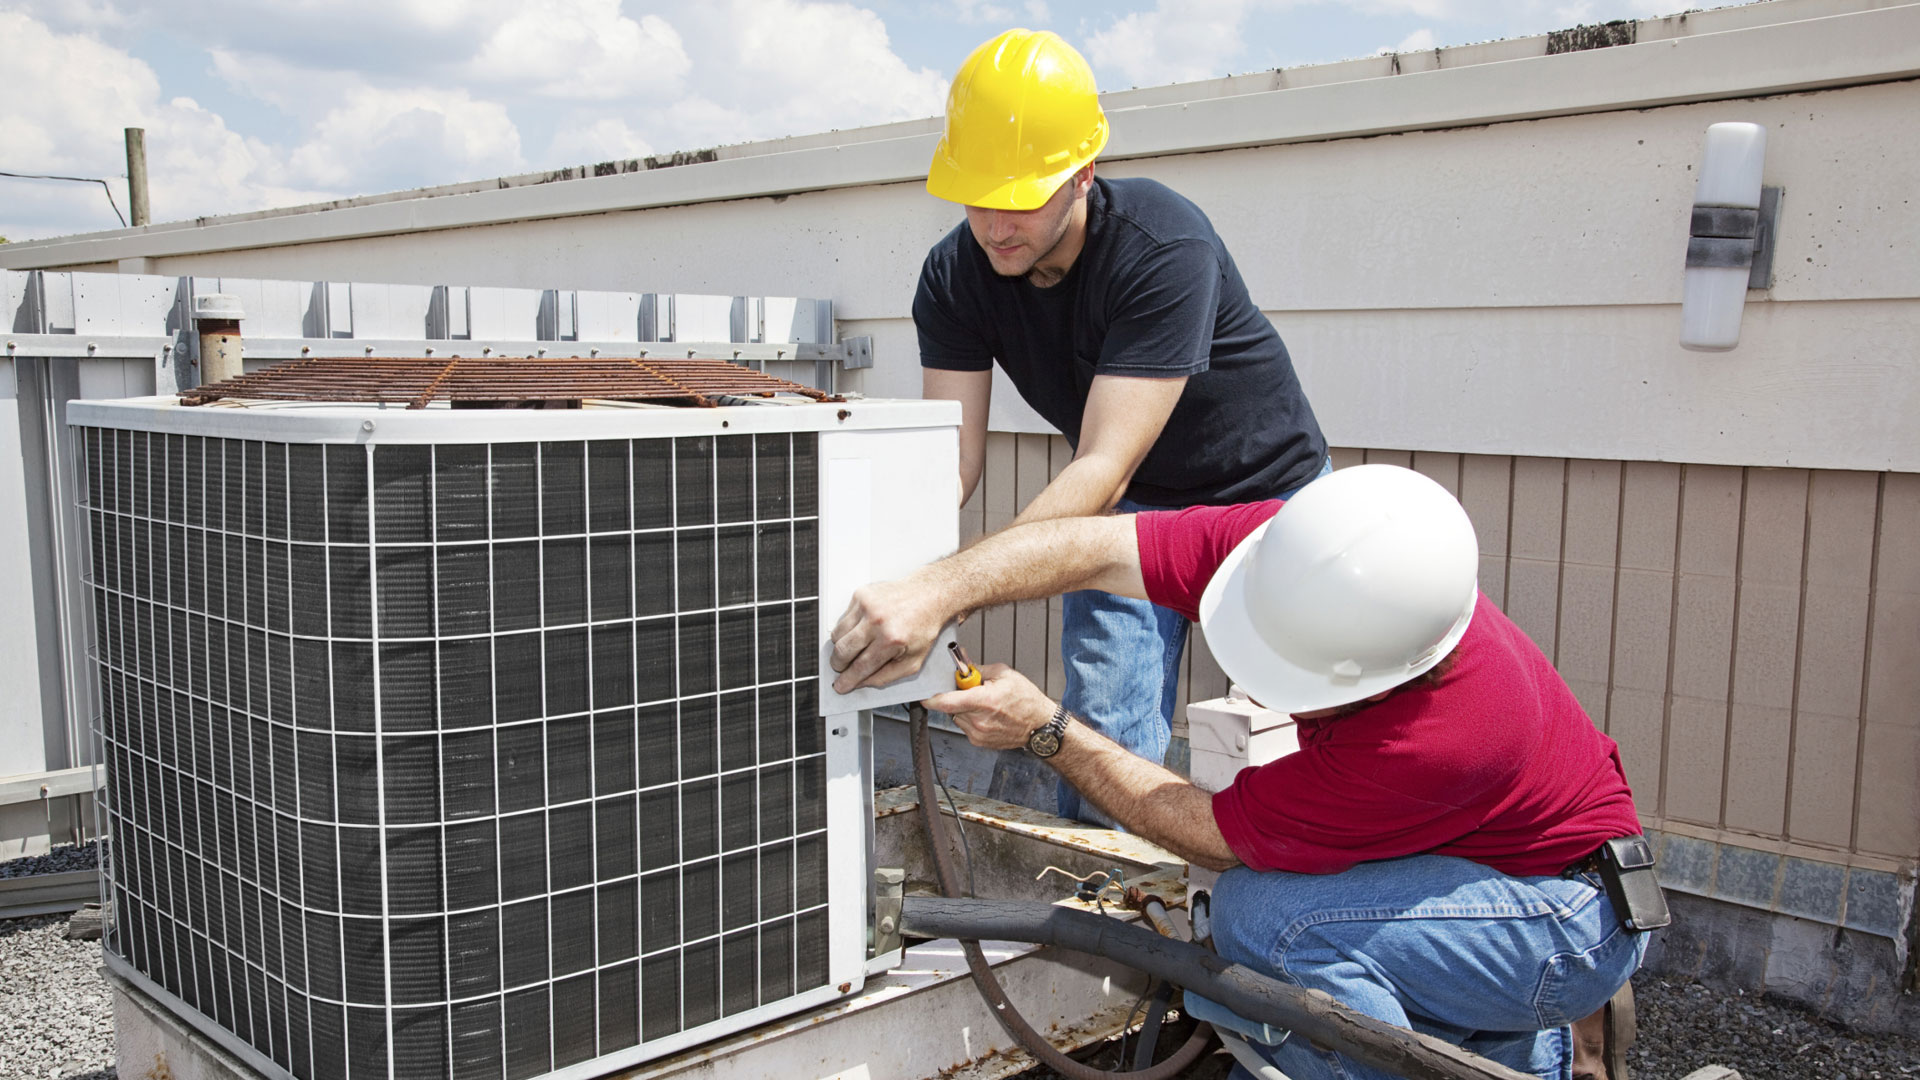 M S Air Systems, HVAC Contractor in hyderabad,HVAC Contractor services in Hyderabad,HVAC Contractor in vijayawada,HVAC Contractor service in vijayawada,HVAC Contractor in Hyderabad